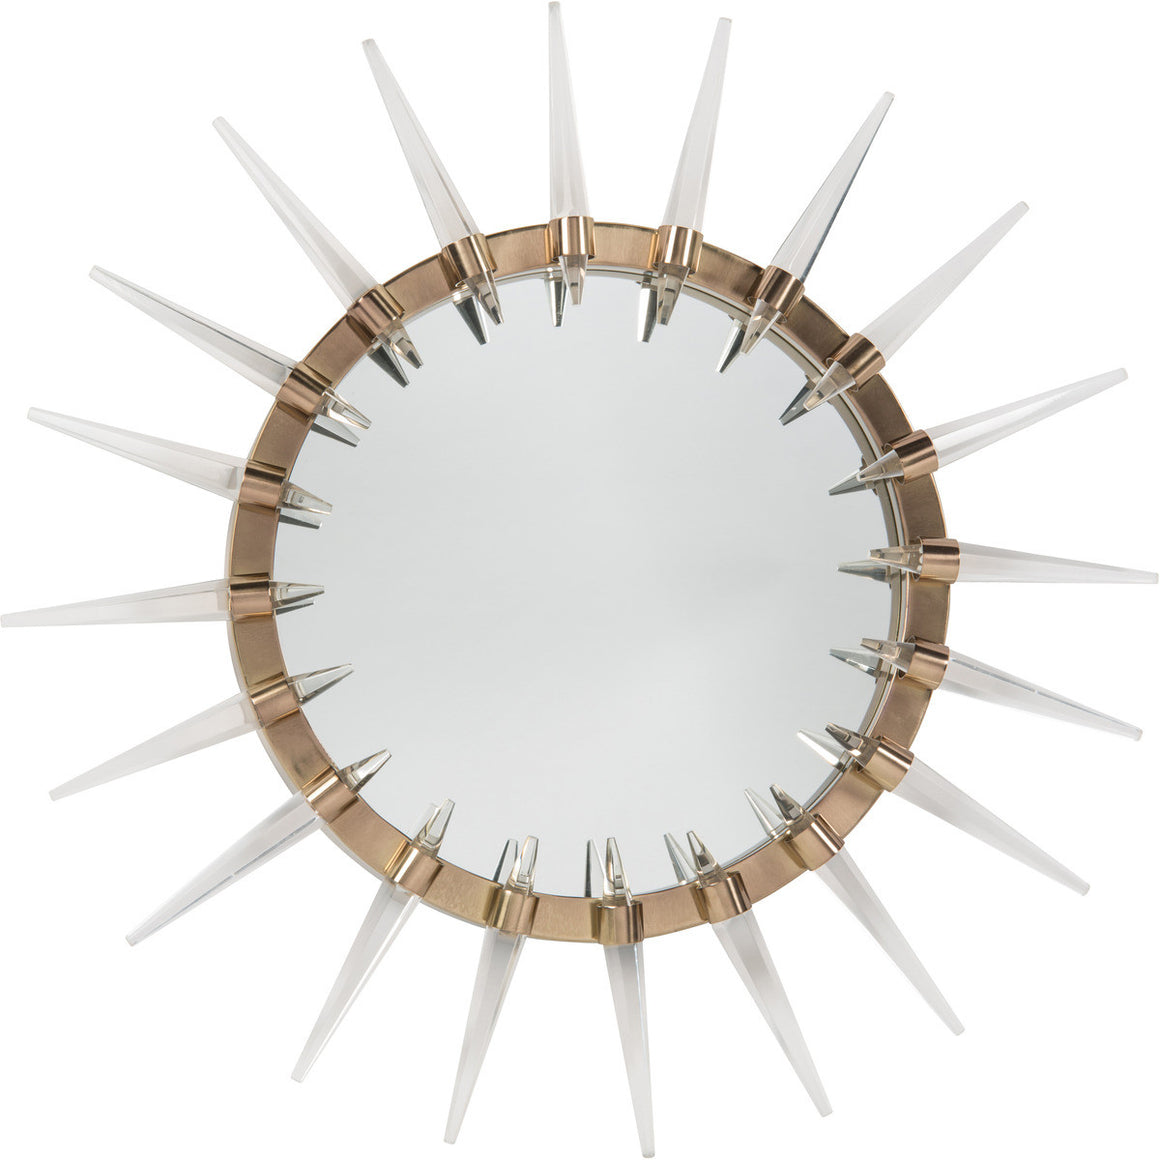 Round Mirror In Brass Frame With Acrylic Spikes